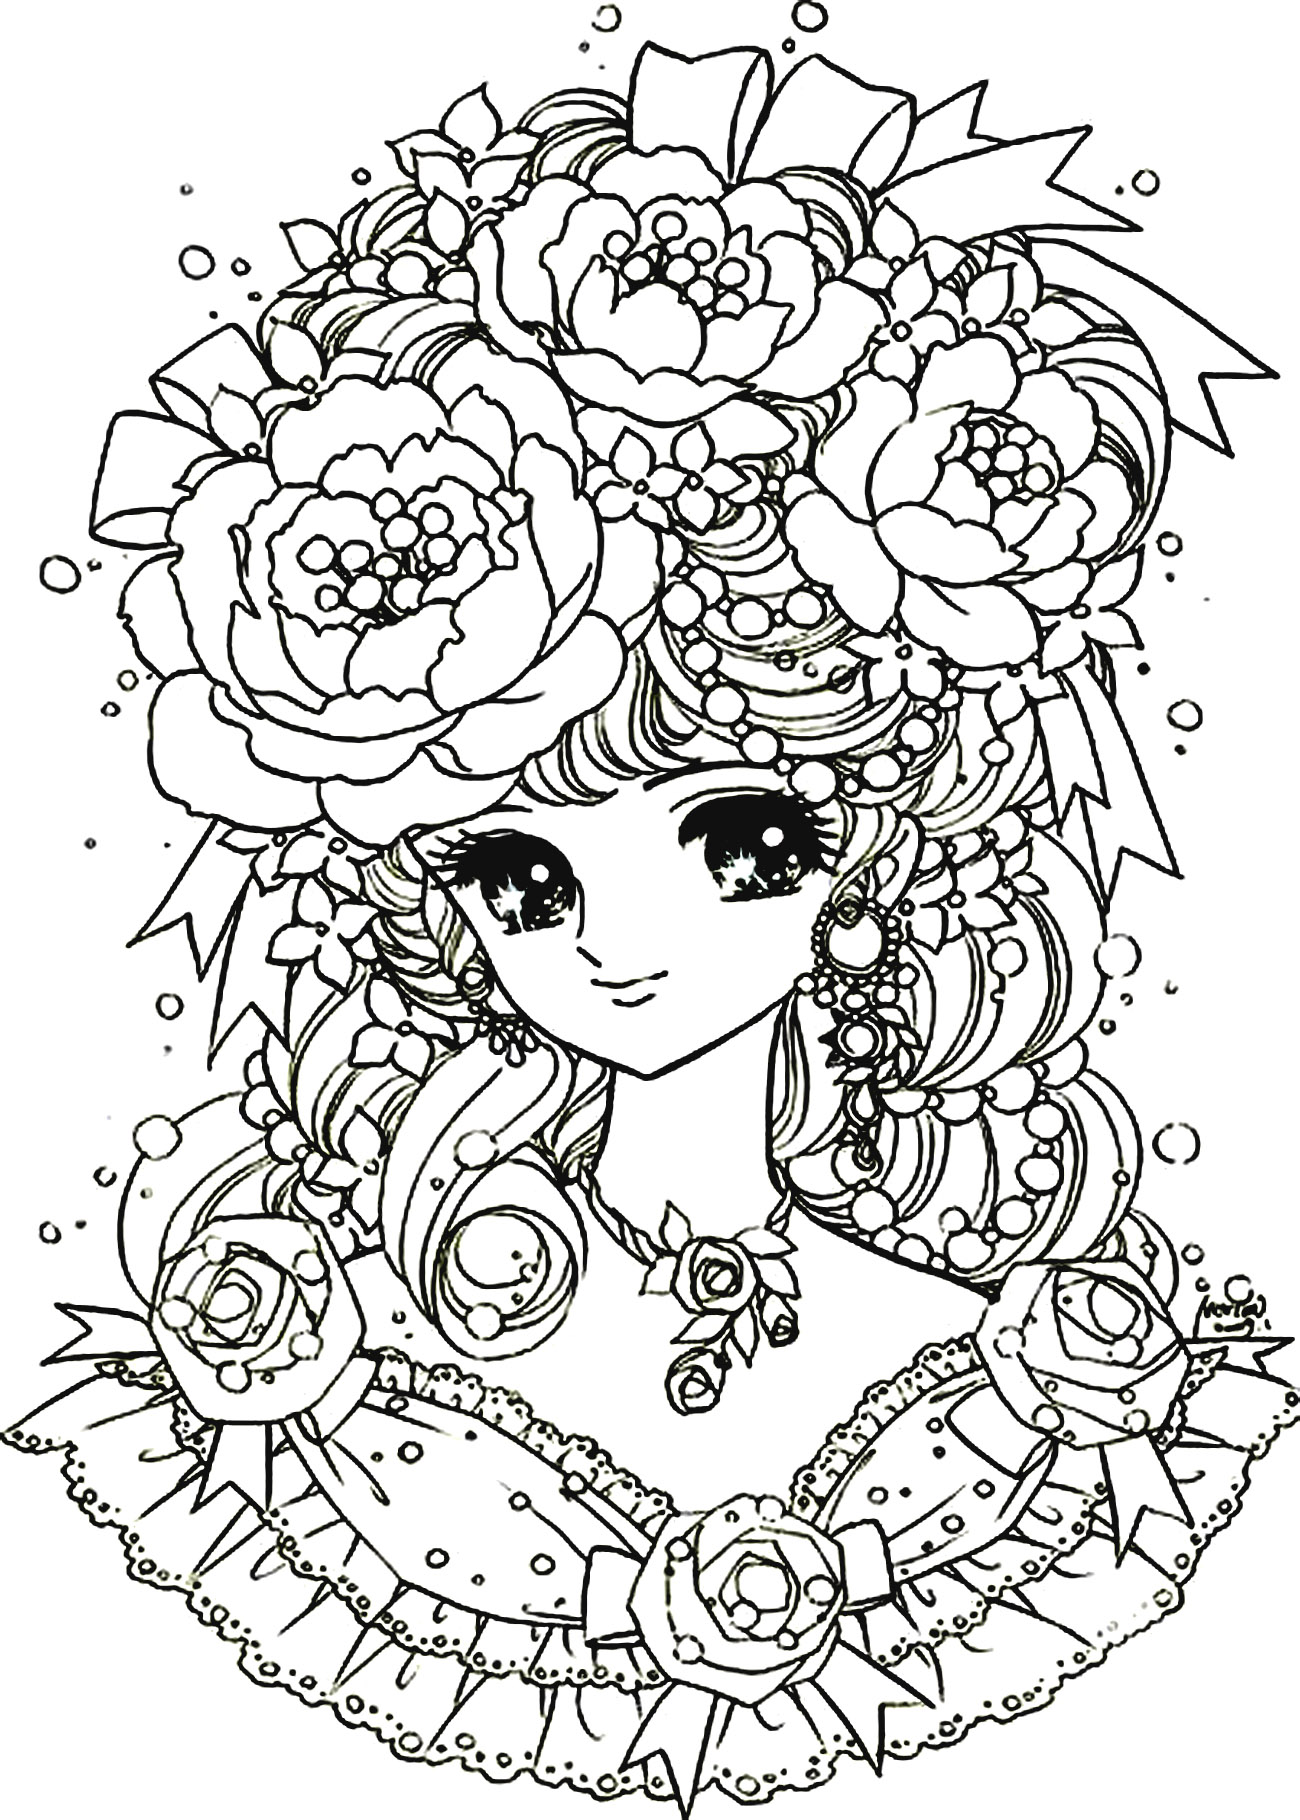 Depression Coloring Pages At Getcolorings